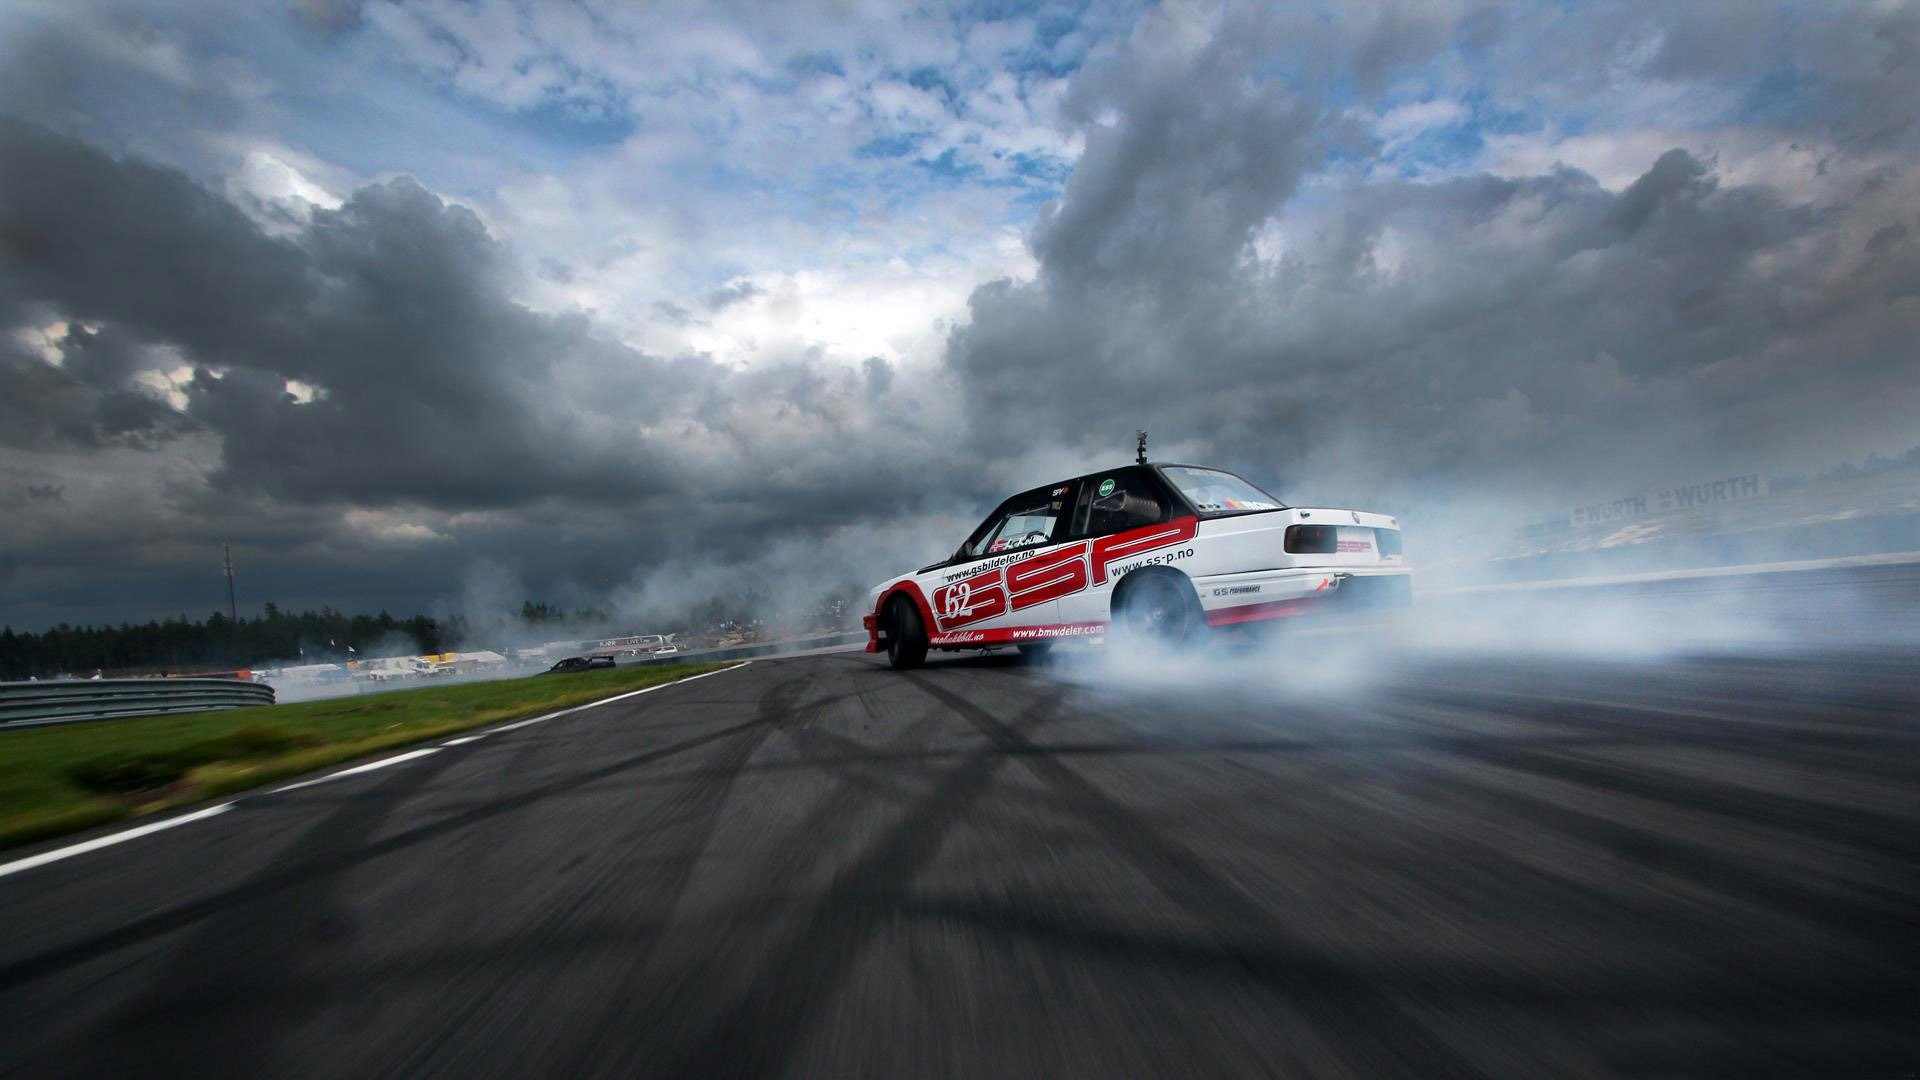 Drifting Wallpaper HD - WallpaperSafari